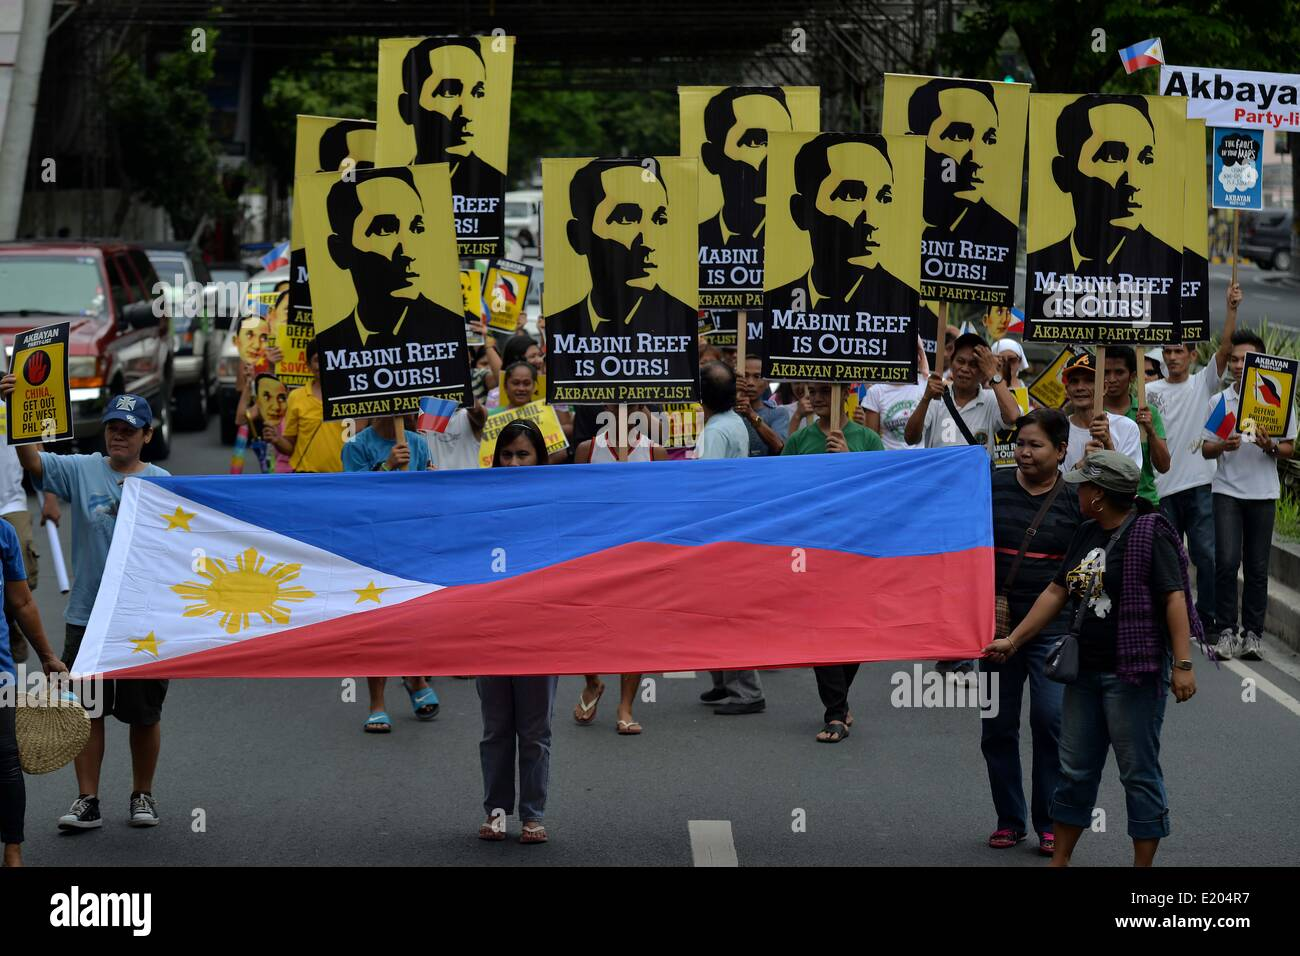 Makati, Philippines. 12th June, 2014. Demonstrators hold placards and the Philippine National flag during a protest - Stock Image